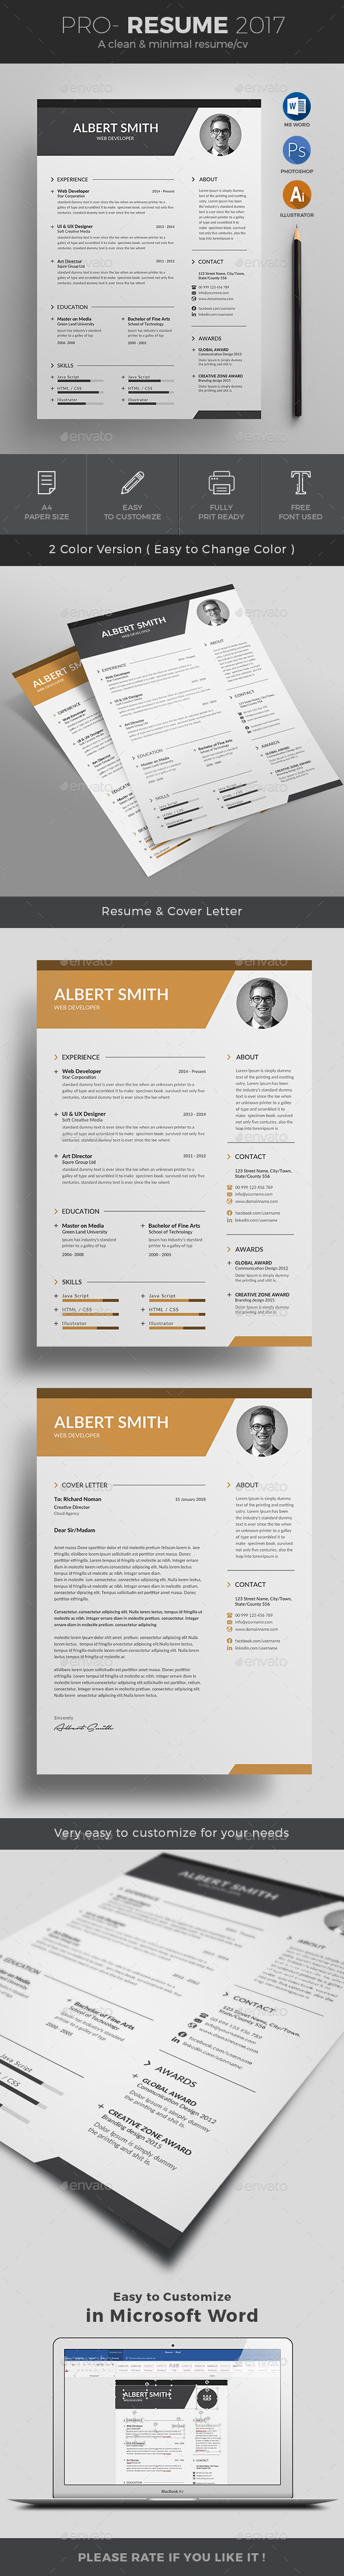 Resume by jpixel55 | GraphicRiver